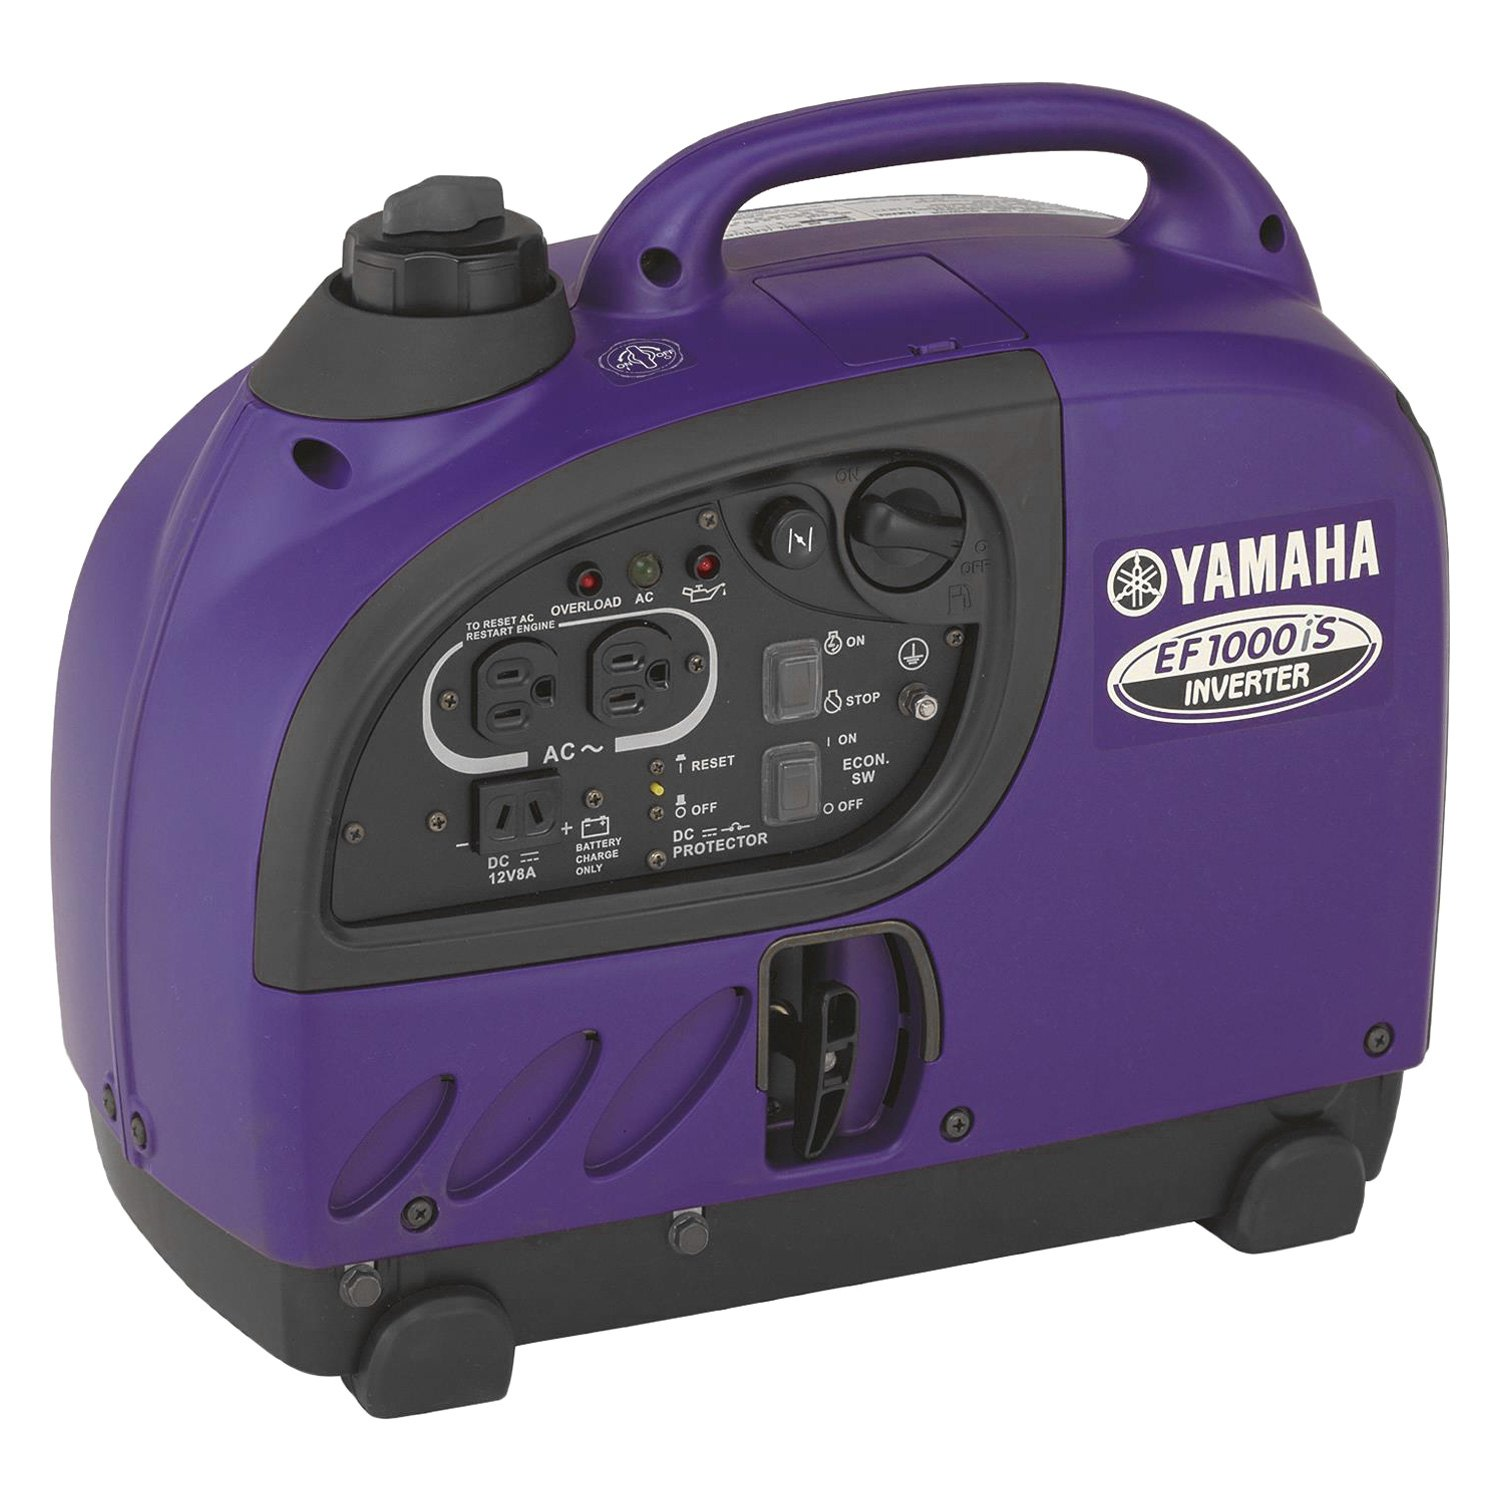 Yamaha ef1000is 1000w inverter generator for Yamaha generator ef1000is